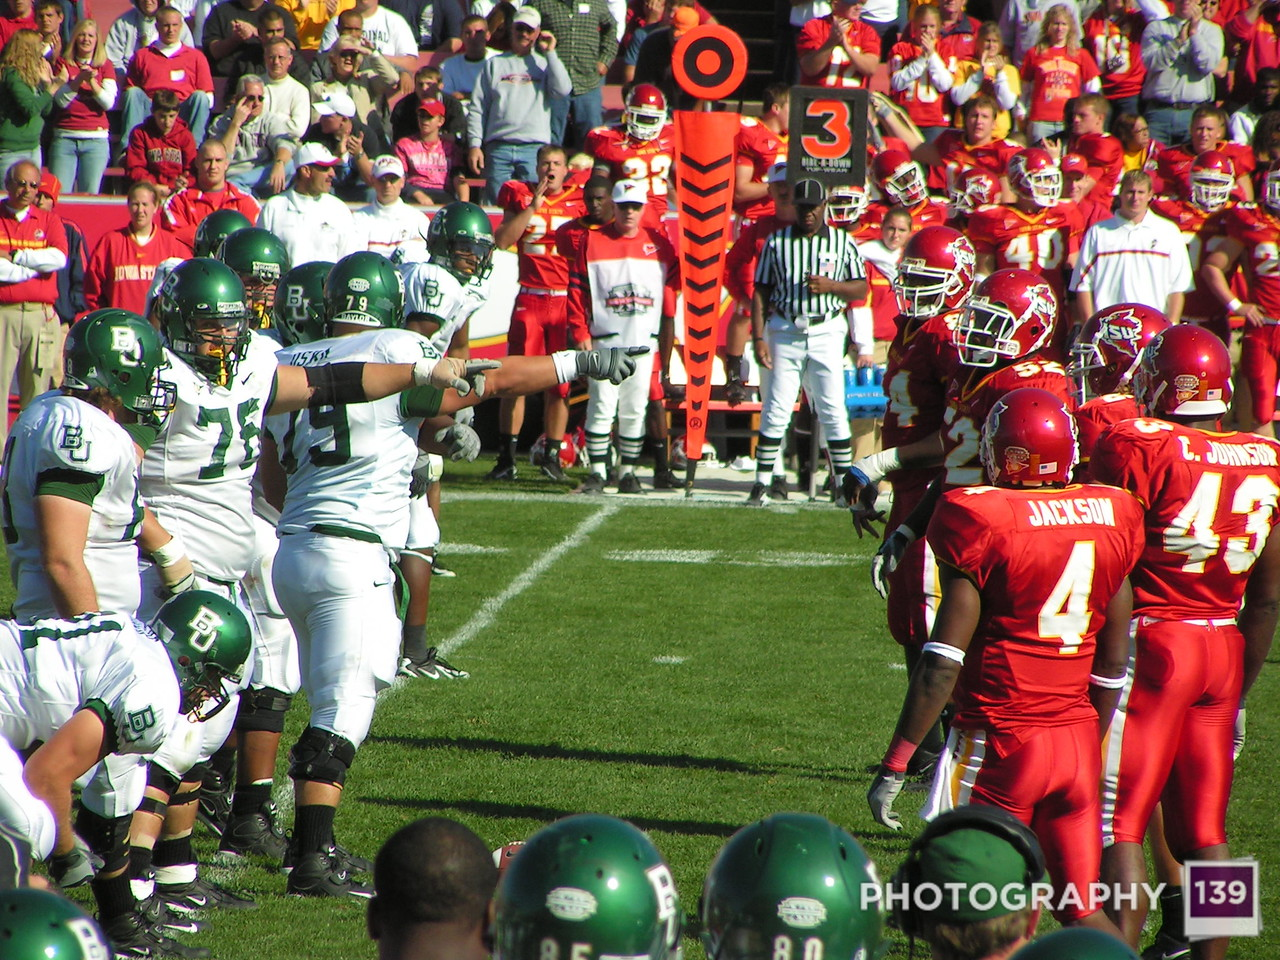 Iowa State vs. Baylor - 2005